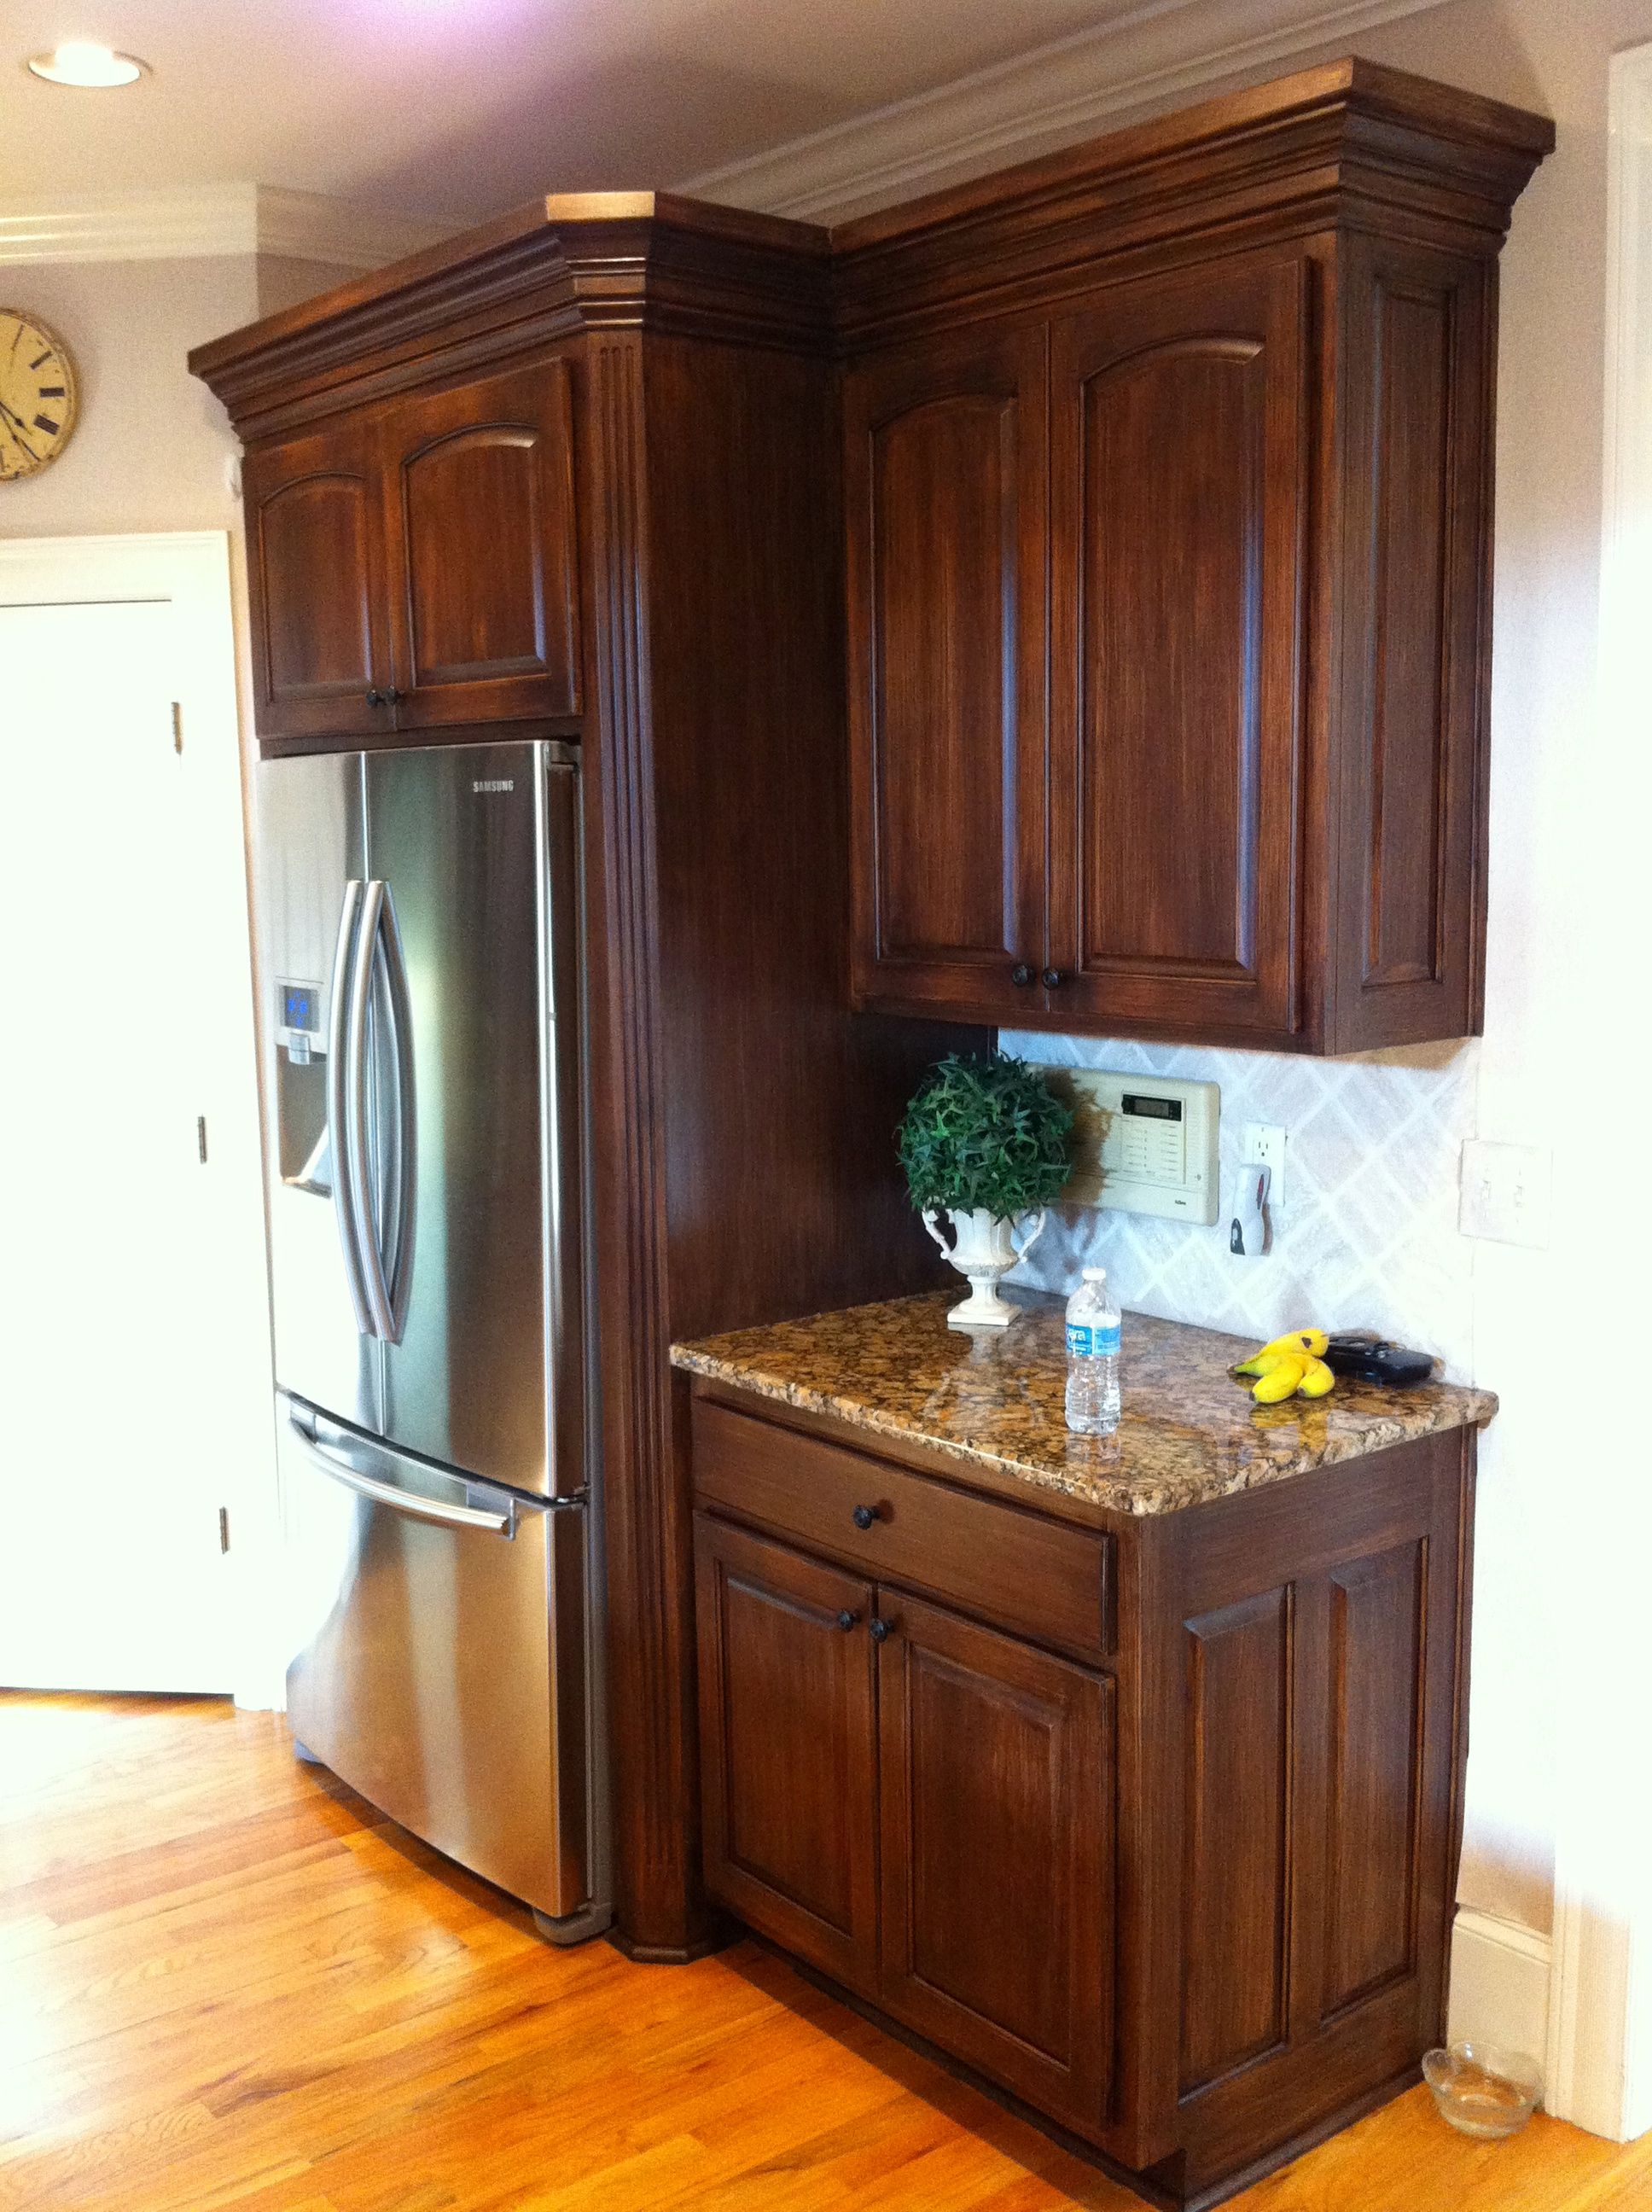 Best Faux Wood Grain On Mdf Kitchen Cabinets By Www Kbwalls Com 400 x 300